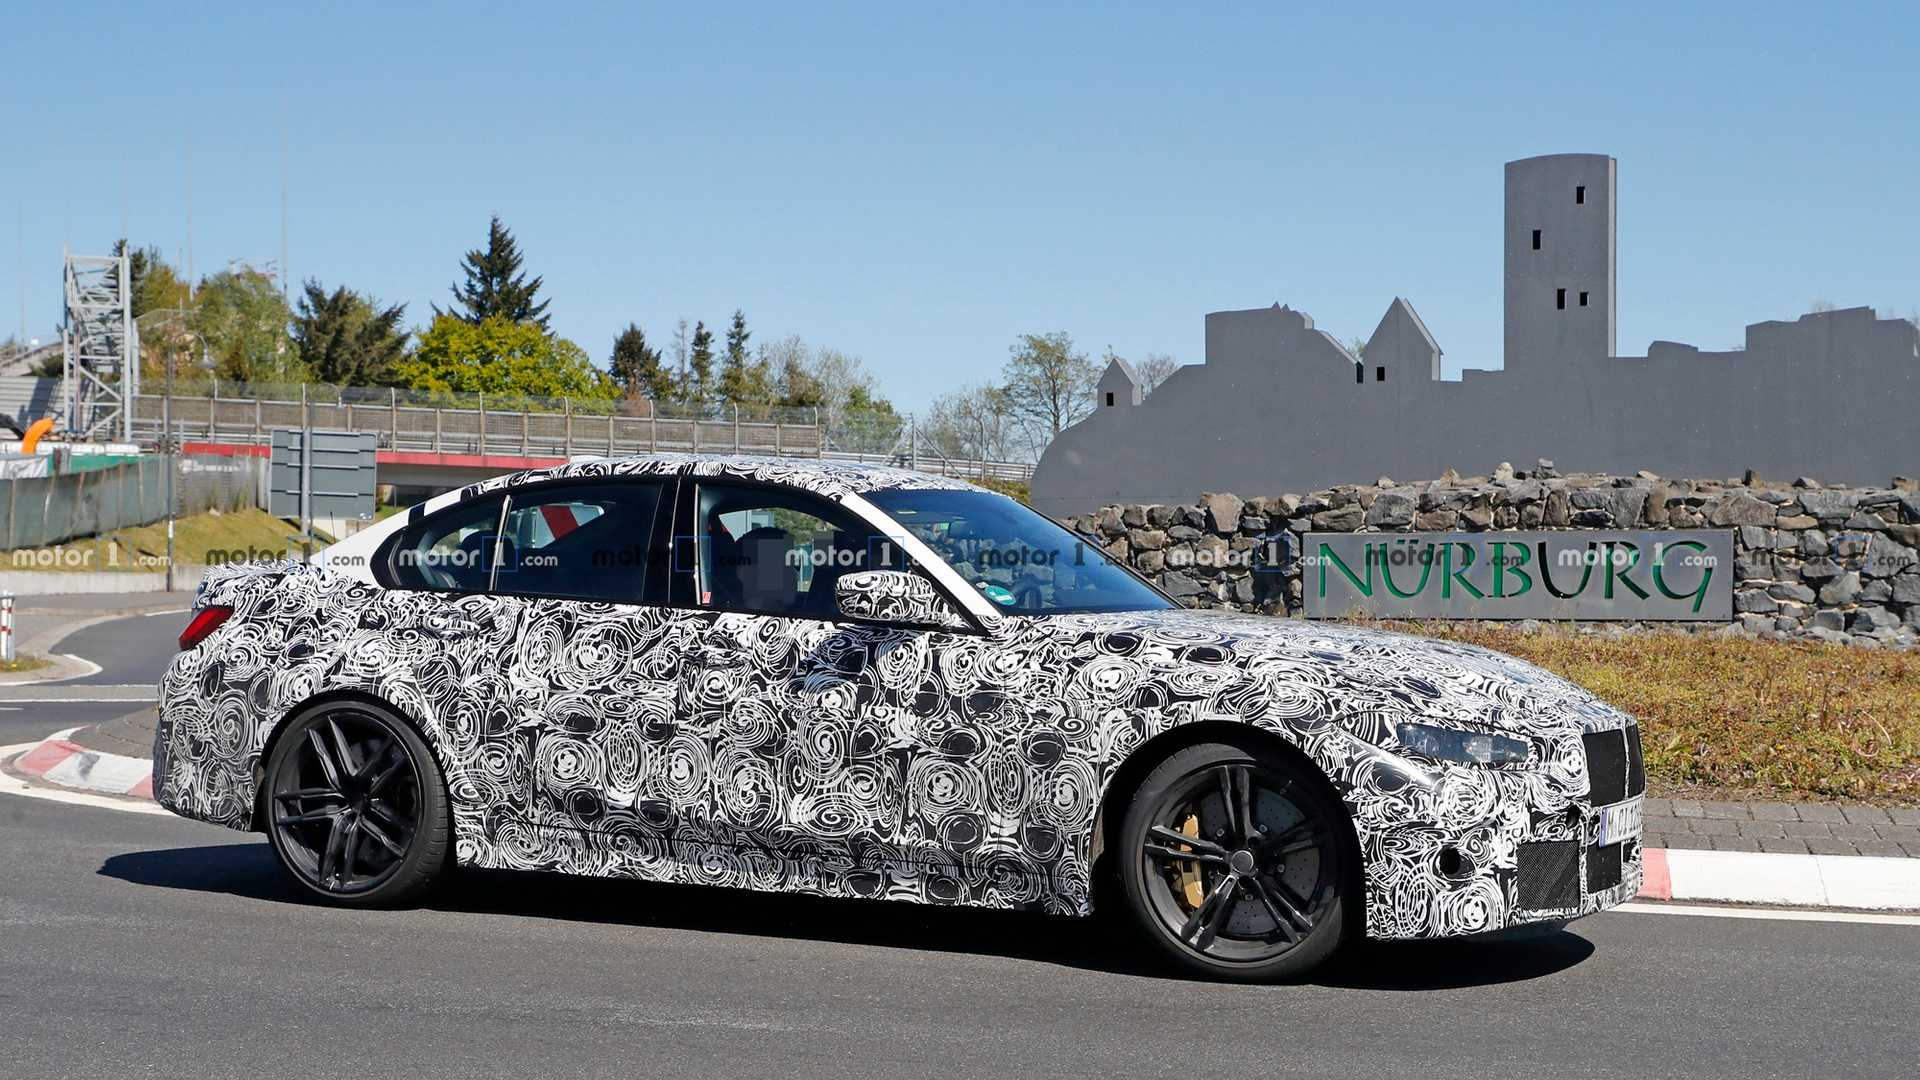 bmw is planning to offer customers the right to decide whether they want their 2020 m3 u0026 39 s or m4 u0026 39 s